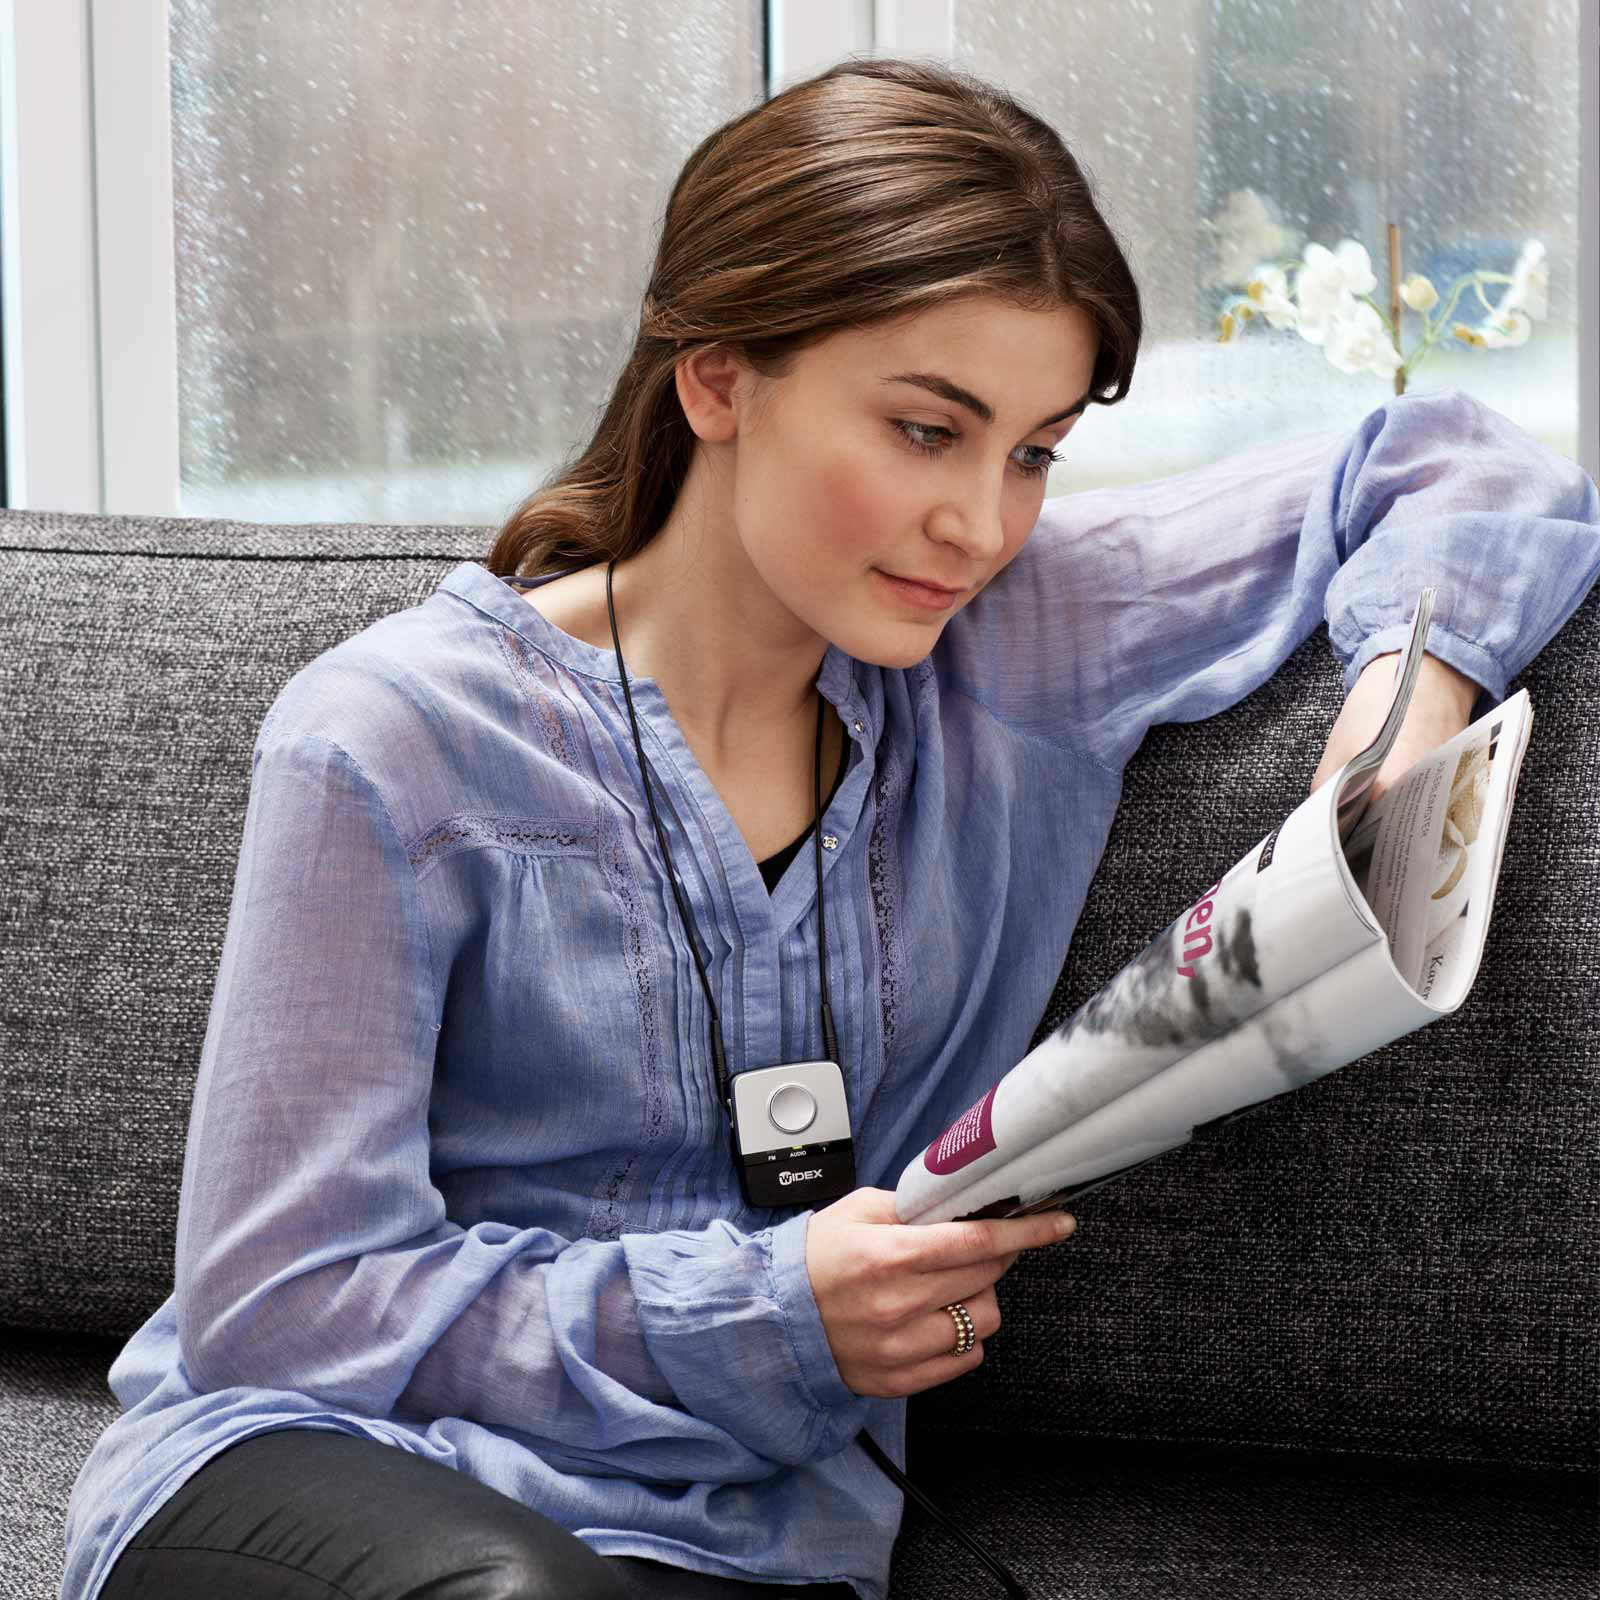 fm-dex-woman-couch-reading-magazine